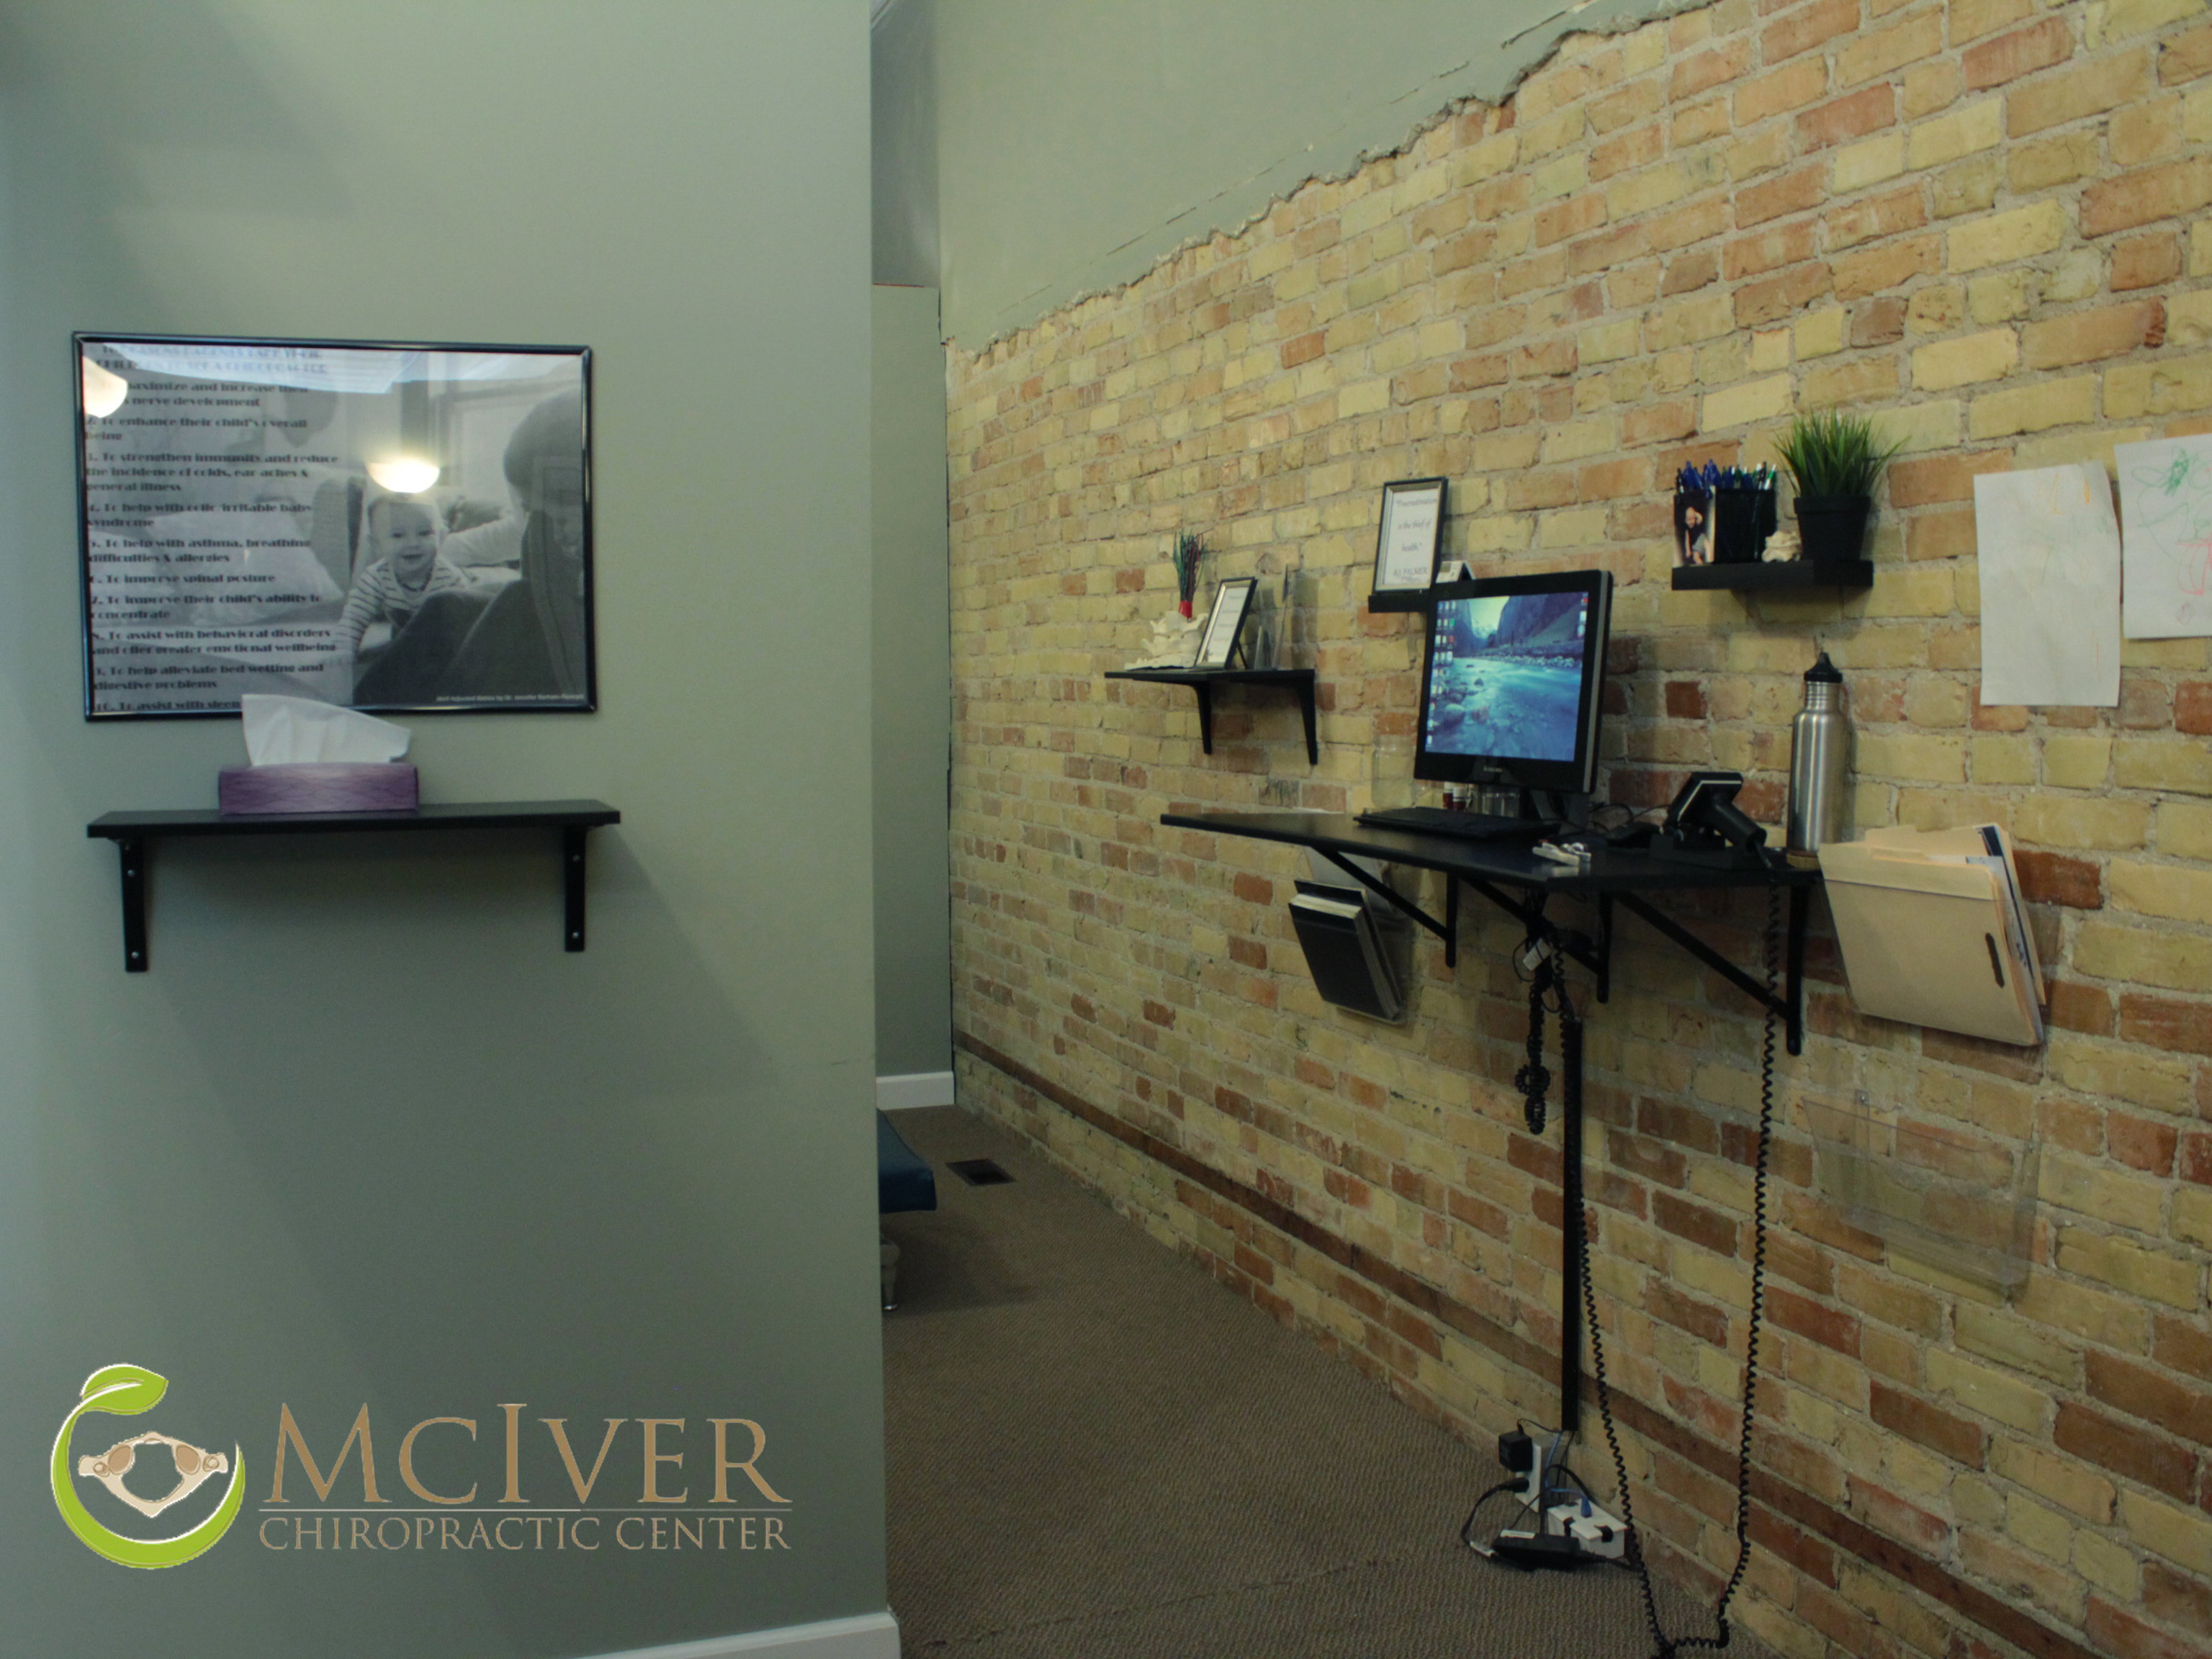 McIver Chiropractic Center image 8